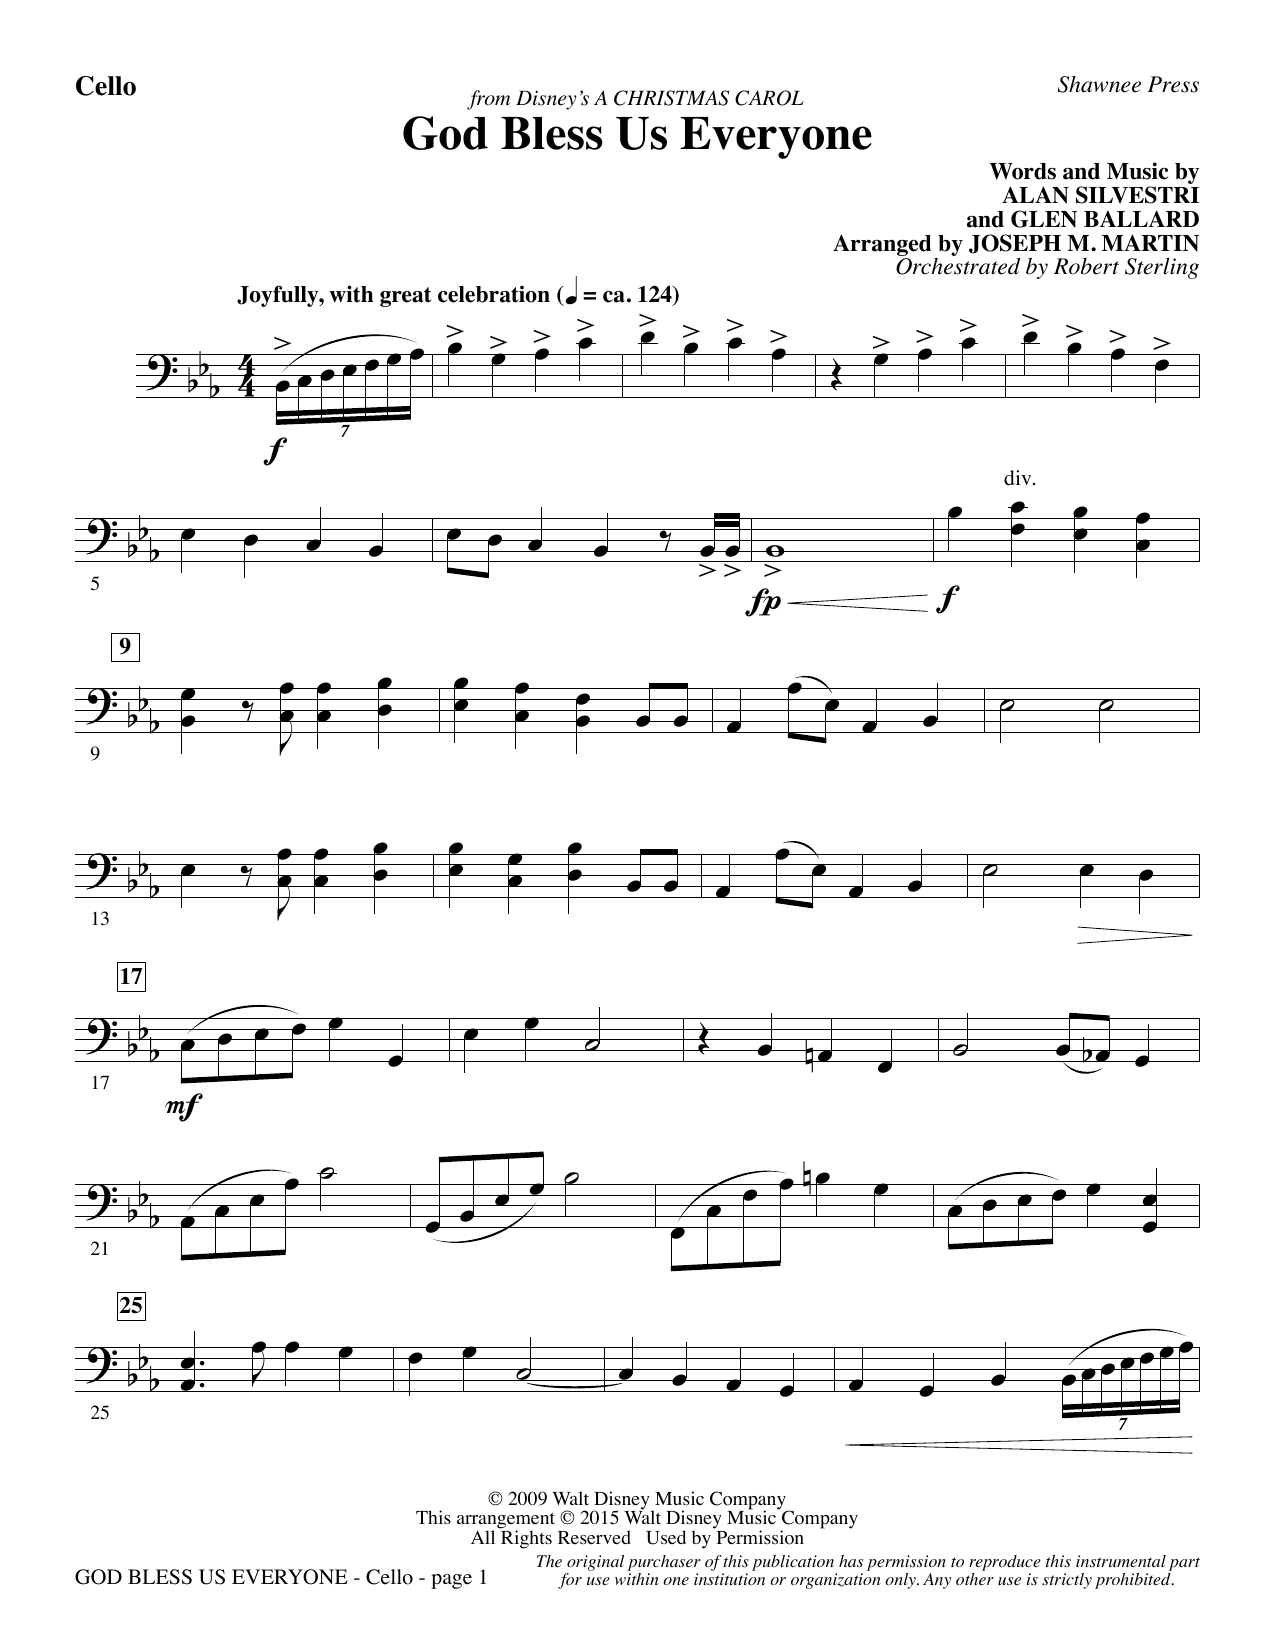 God Bless Us Everyone (from Disney's A Christmas Carol) - Cello sheet music